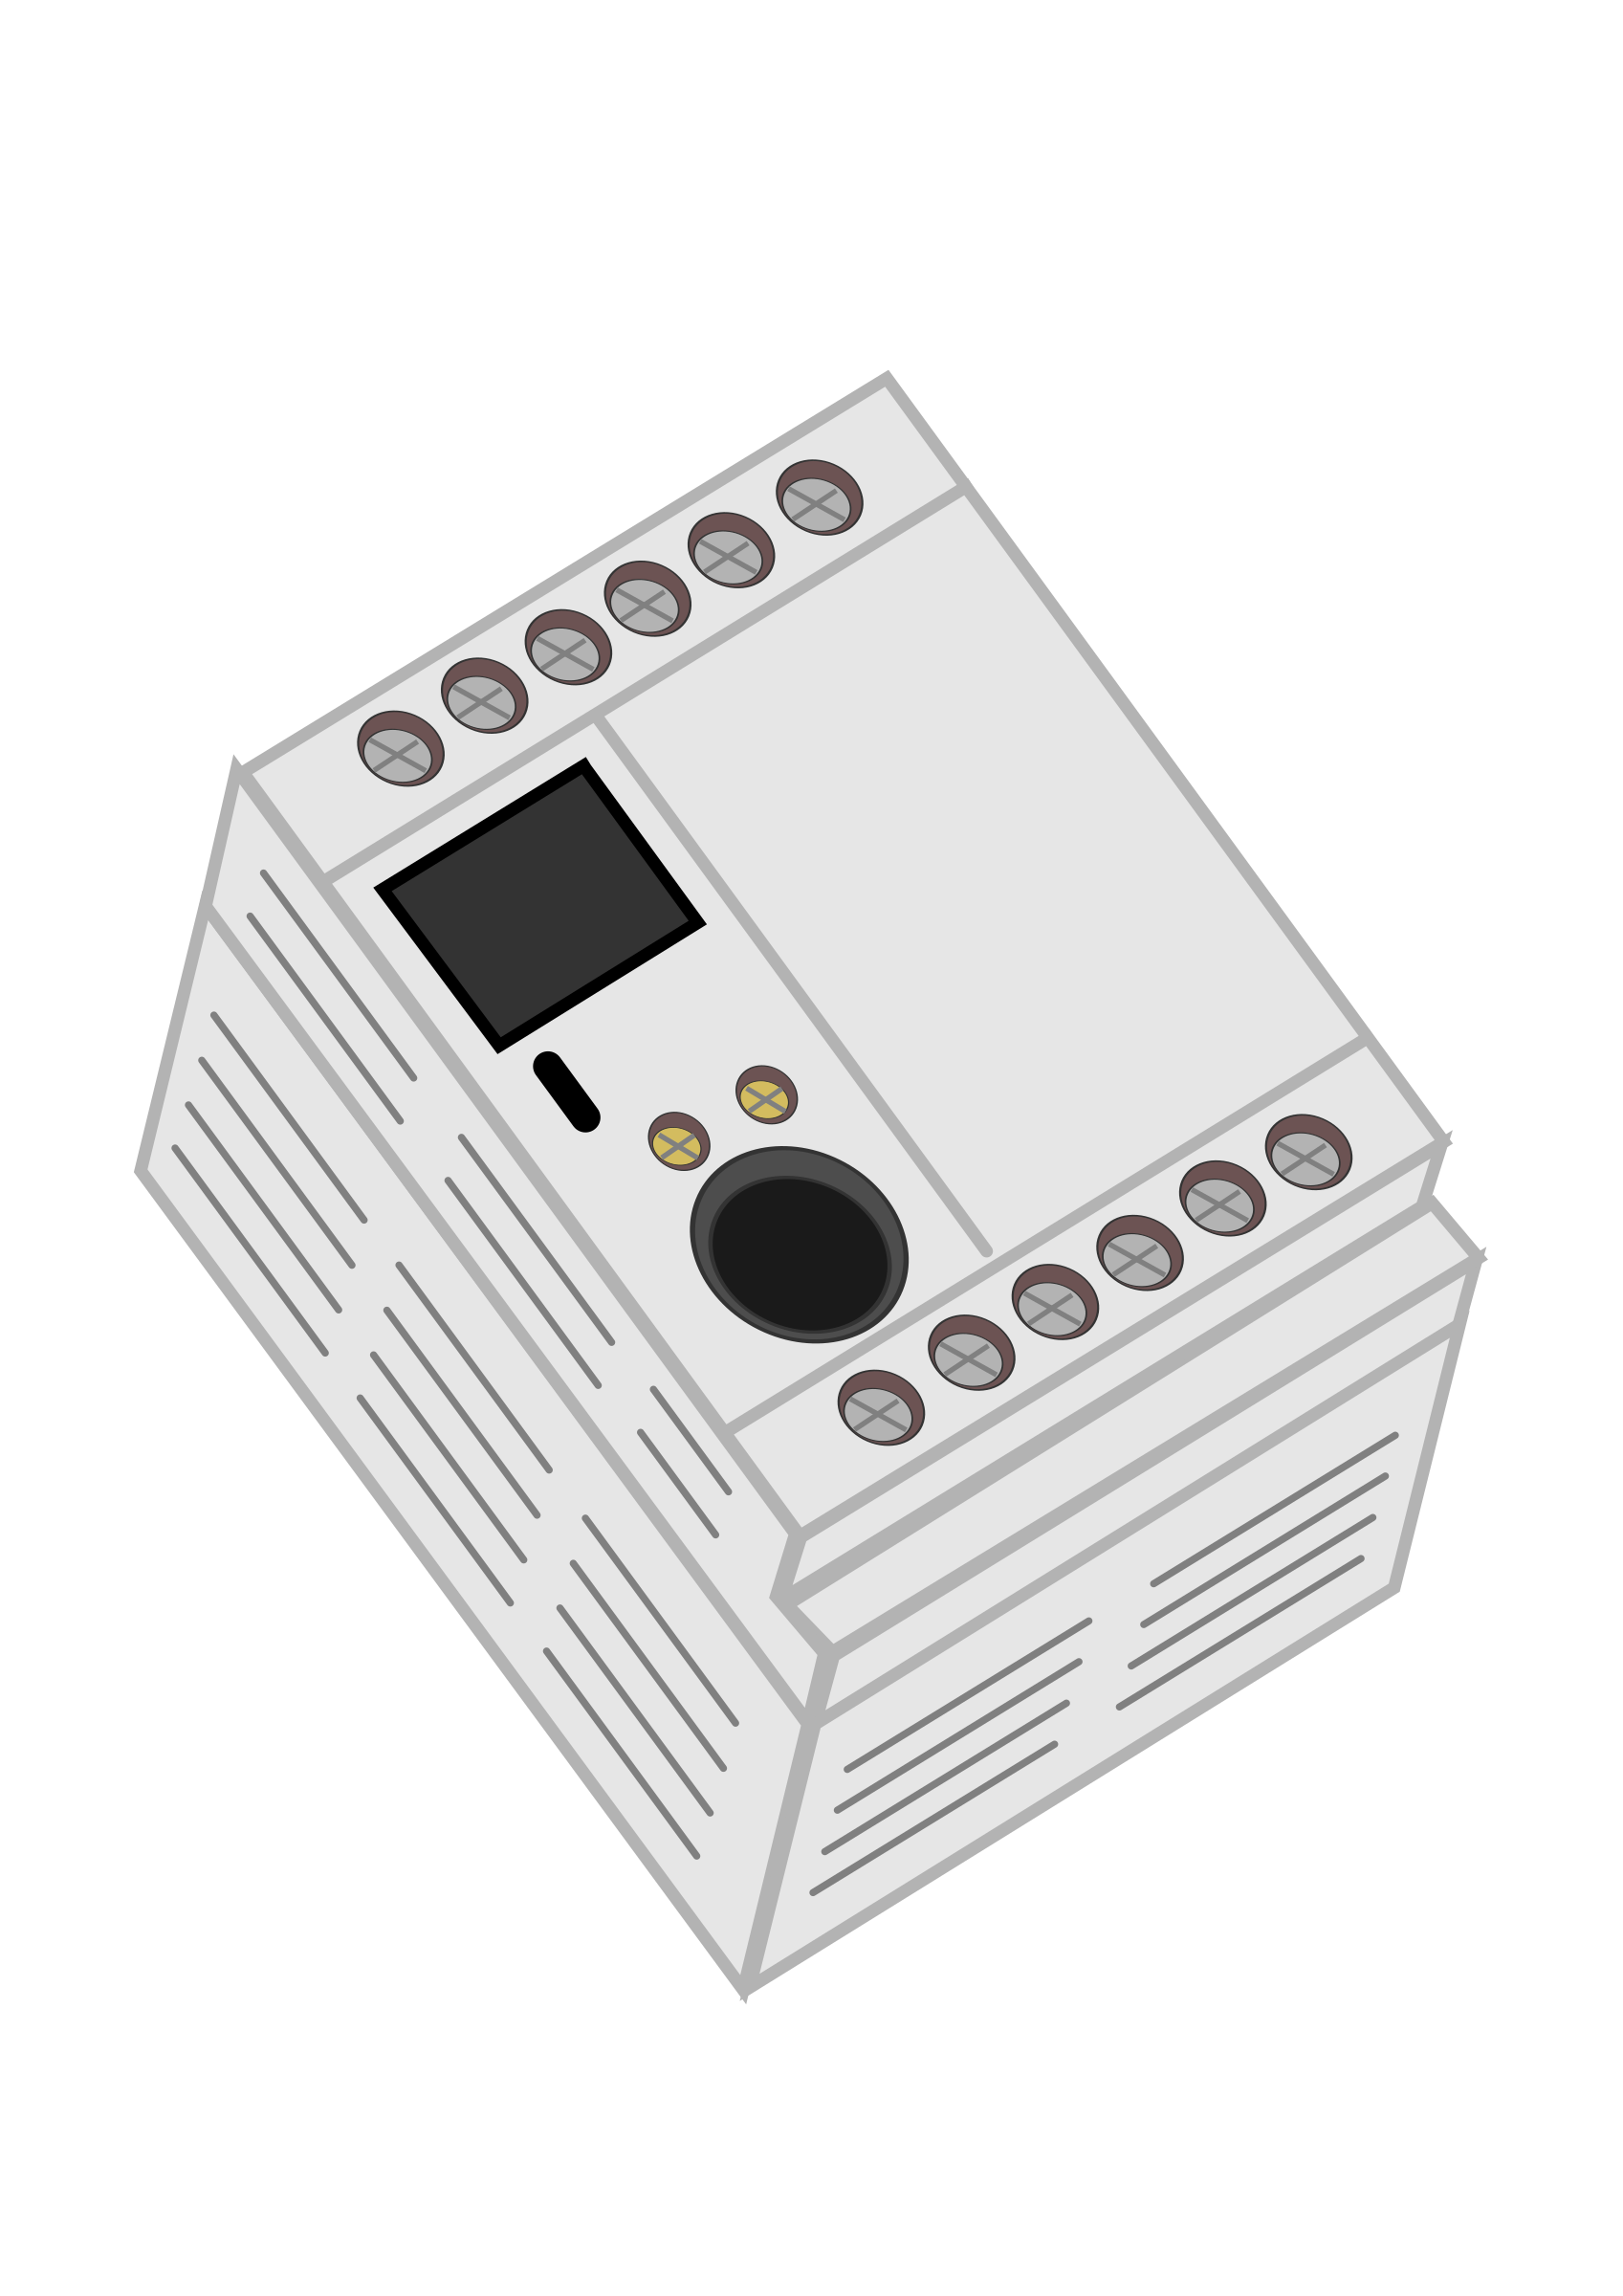 Programmable Logic Controller by wetomelo